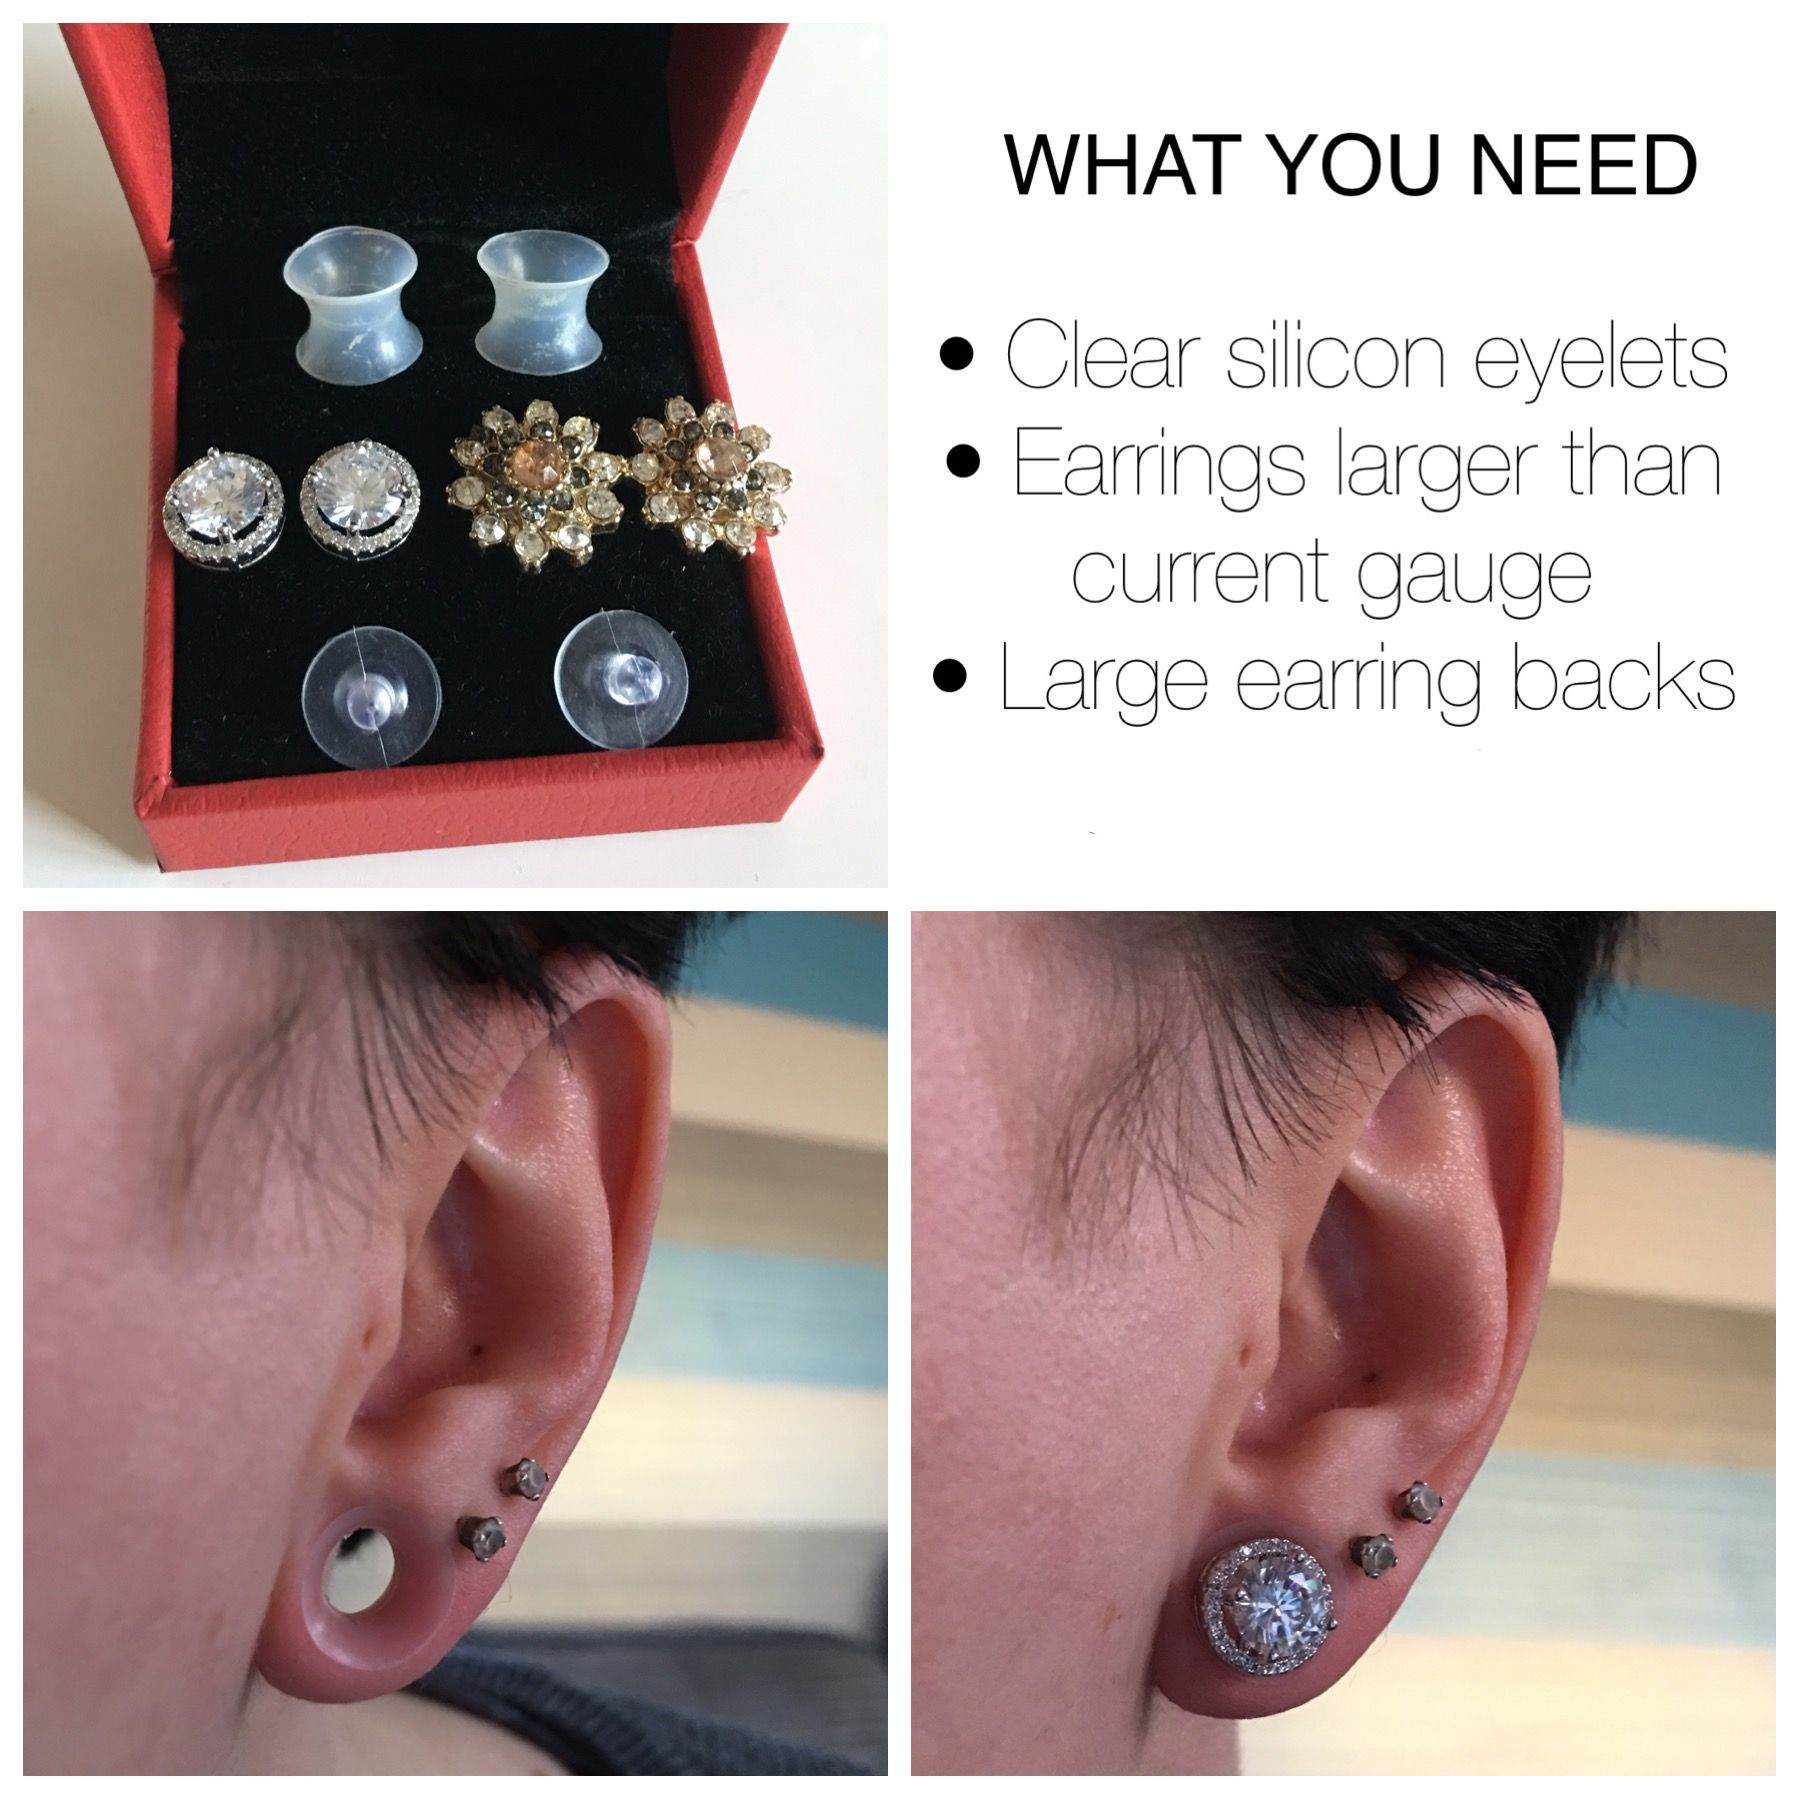 fc9ebf4fc How to hide stretched ears using clear silicone eyelets, earrings larger  than current gauge and large earring backs. All easily bought from amazon